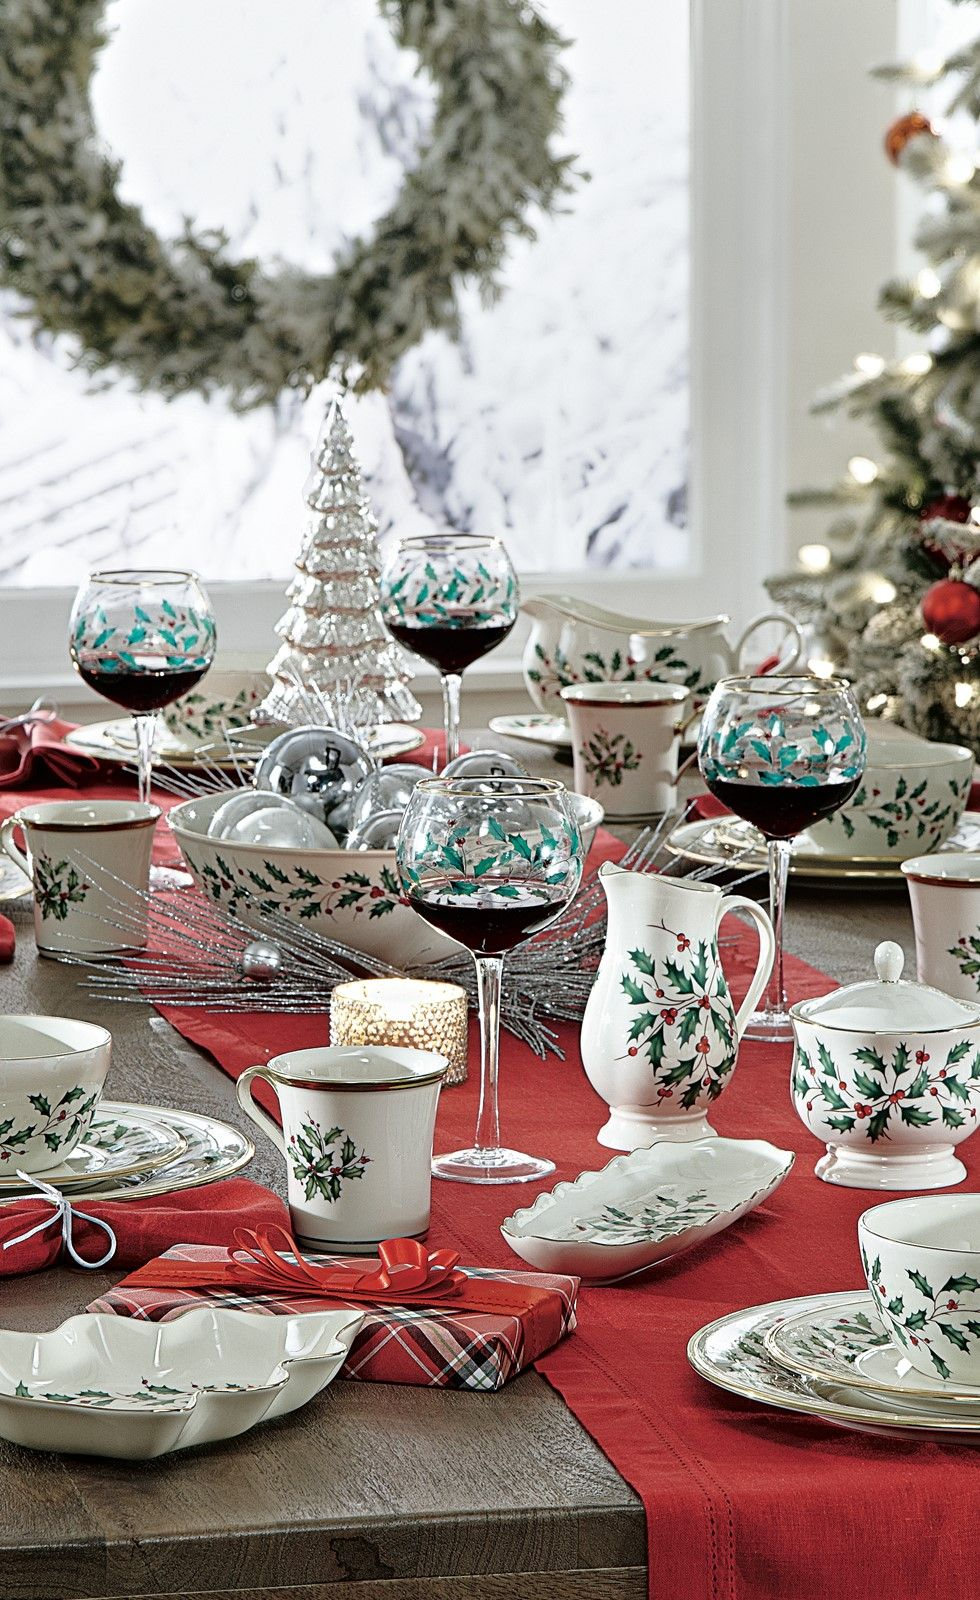 Lenox Christmas Chair Covers Sitting Chairs For Living Room Shop This Gorgeous Holiday Serveware Set To Dress Up Your Tabletop Season